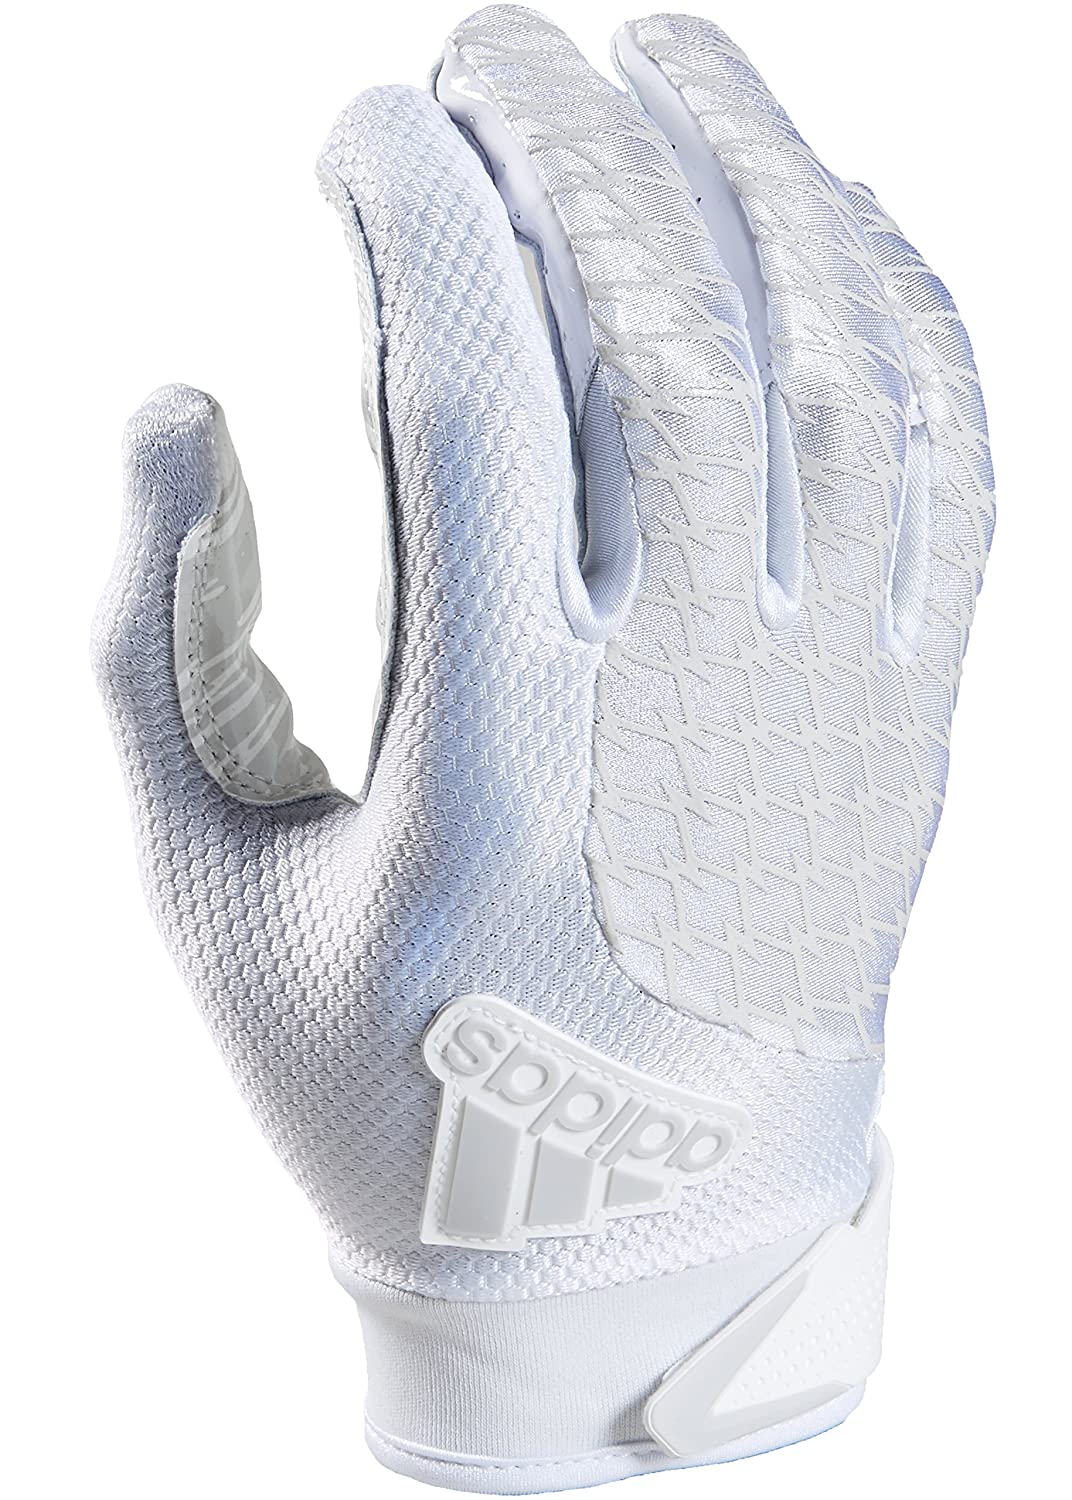 (Small, White/White) - Adidas Adifast 2.0 Youth Football Receiver Gloves B07235T1X3